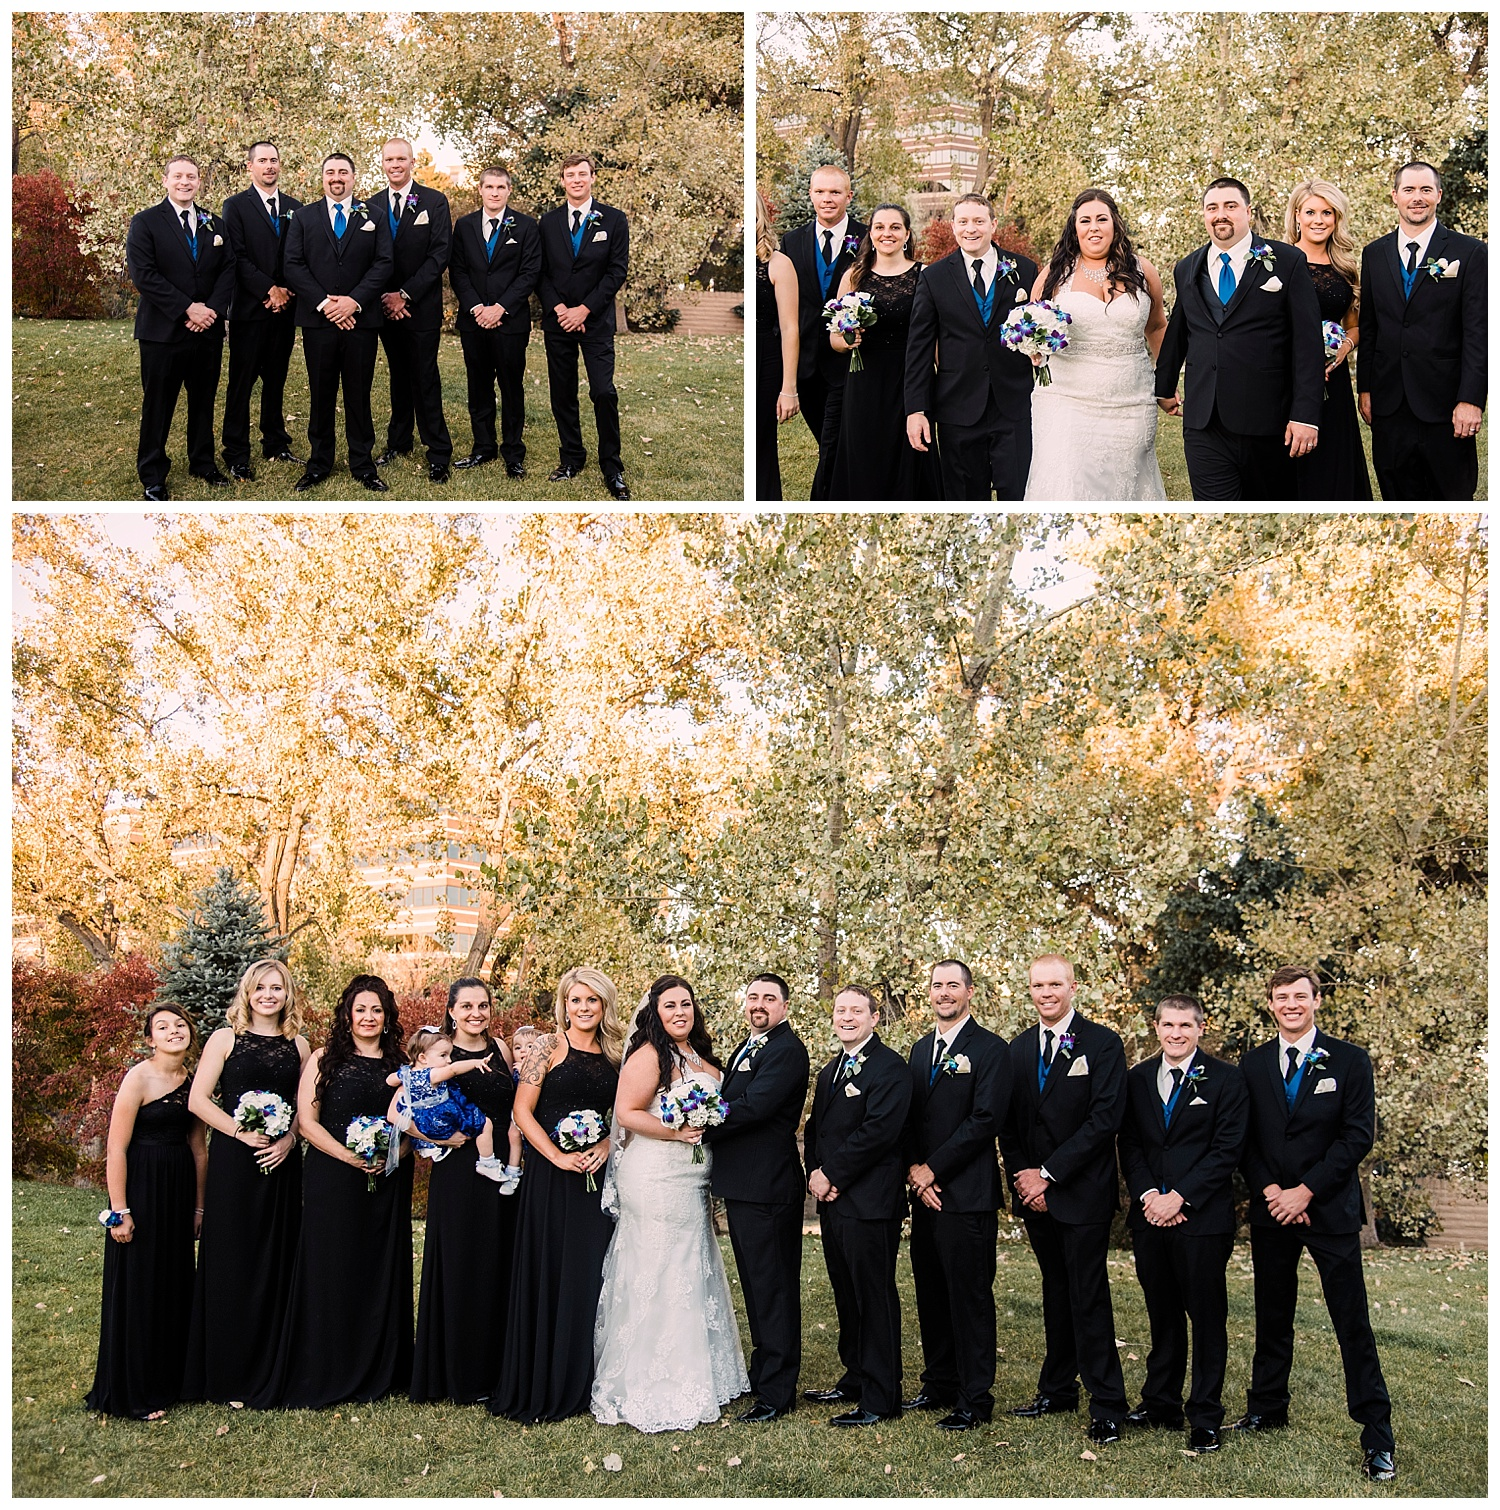 Colorado_Wedding_Photographer_Apollo_Fields_Weddings_Photography_014.jpg